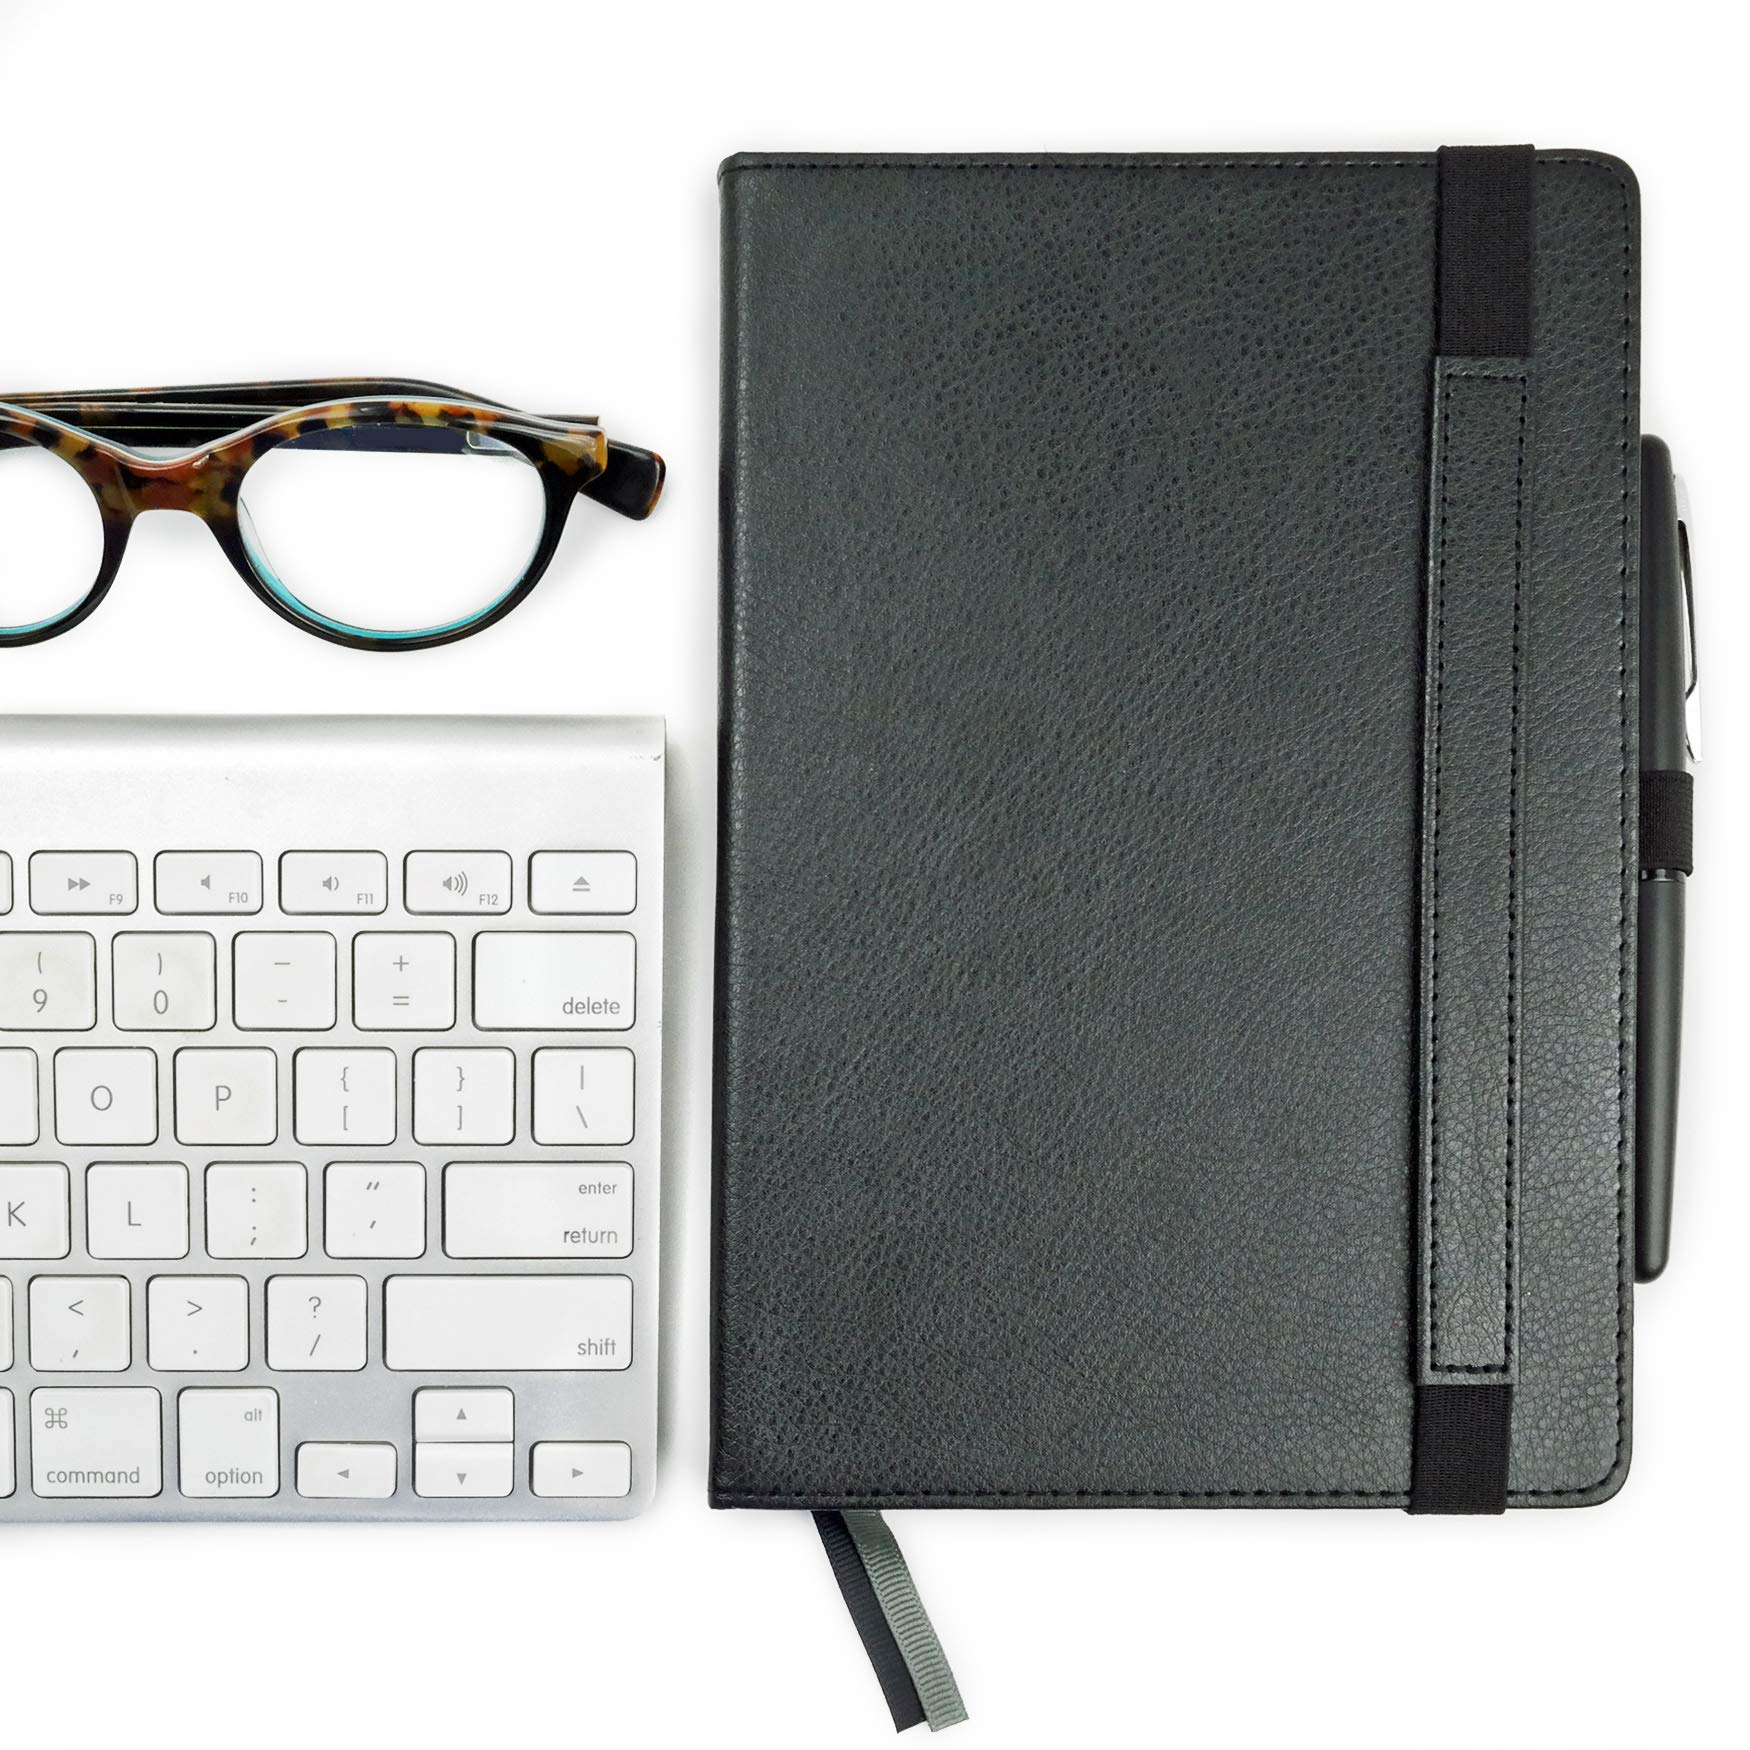 RICCO BELLO Primo Classic Ruled Notebook with Pen Loop/Hardcover, Fountain Pen Friendly, Banded, 2 Bookmarks, Expandable Pocket, Numbered Pages / 5.7 x 8.4 inches (Black) by RICCO BELLO (Image #7)